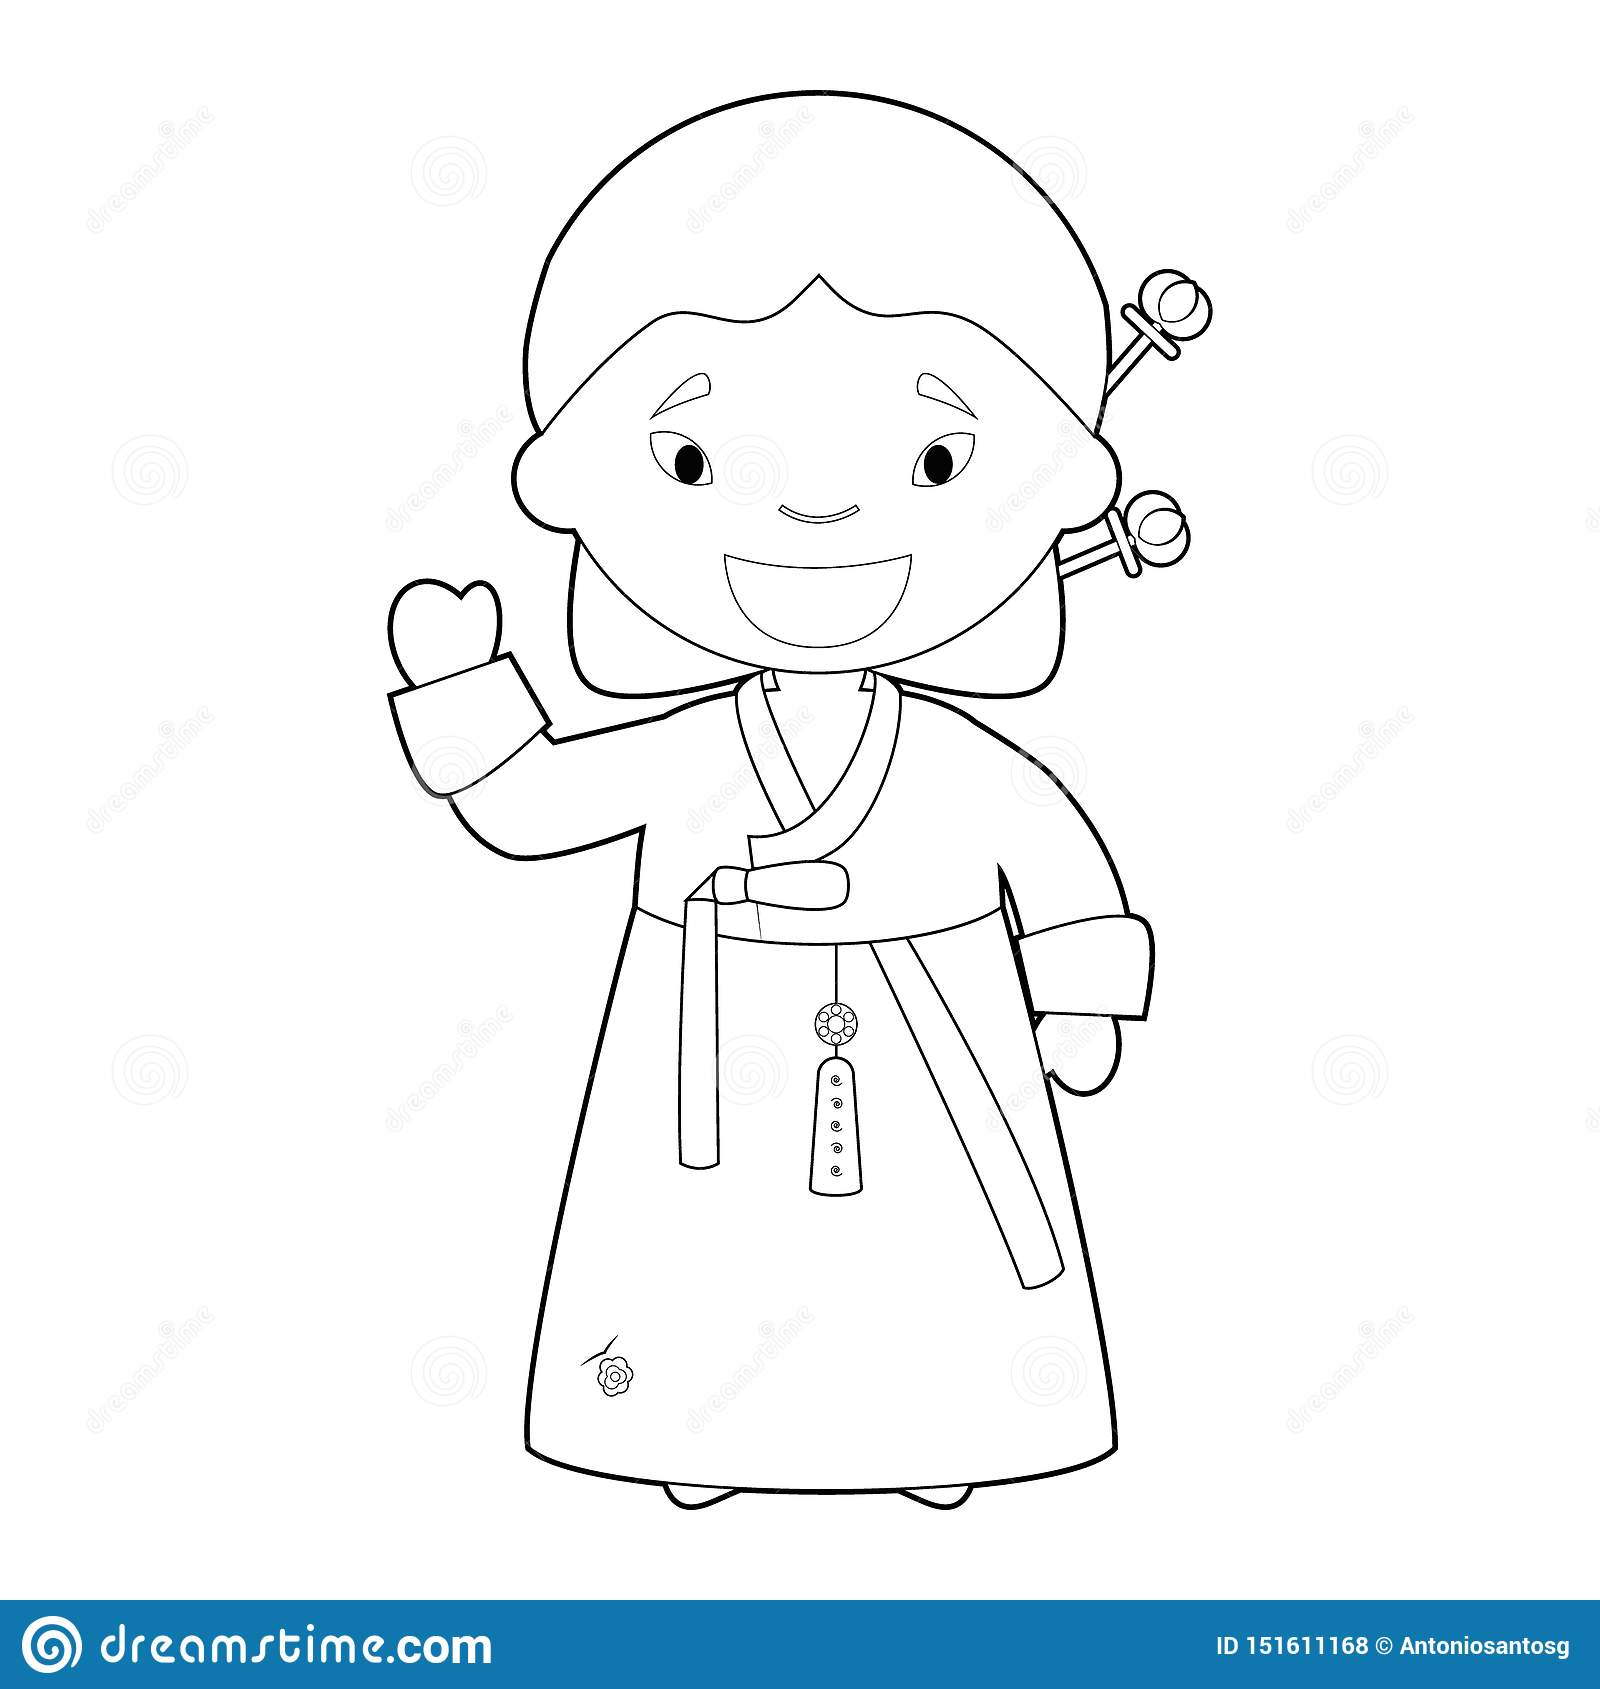 Easy Coloring Cartoon Character From South Korea Dressed In The